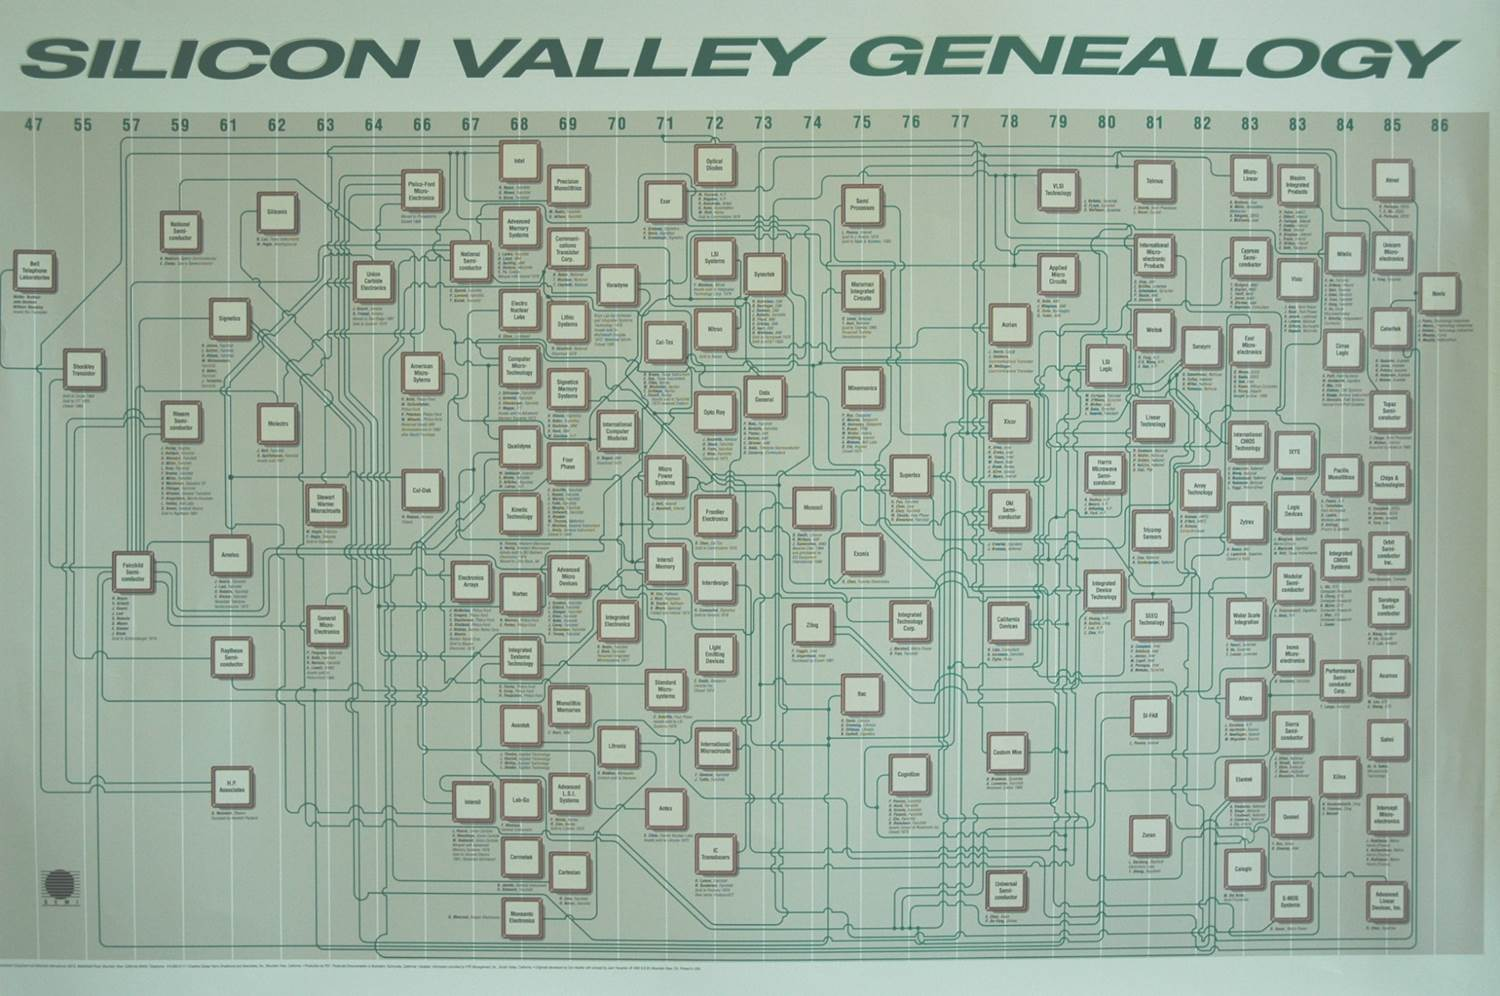 SiliconValleyGenealogy-All